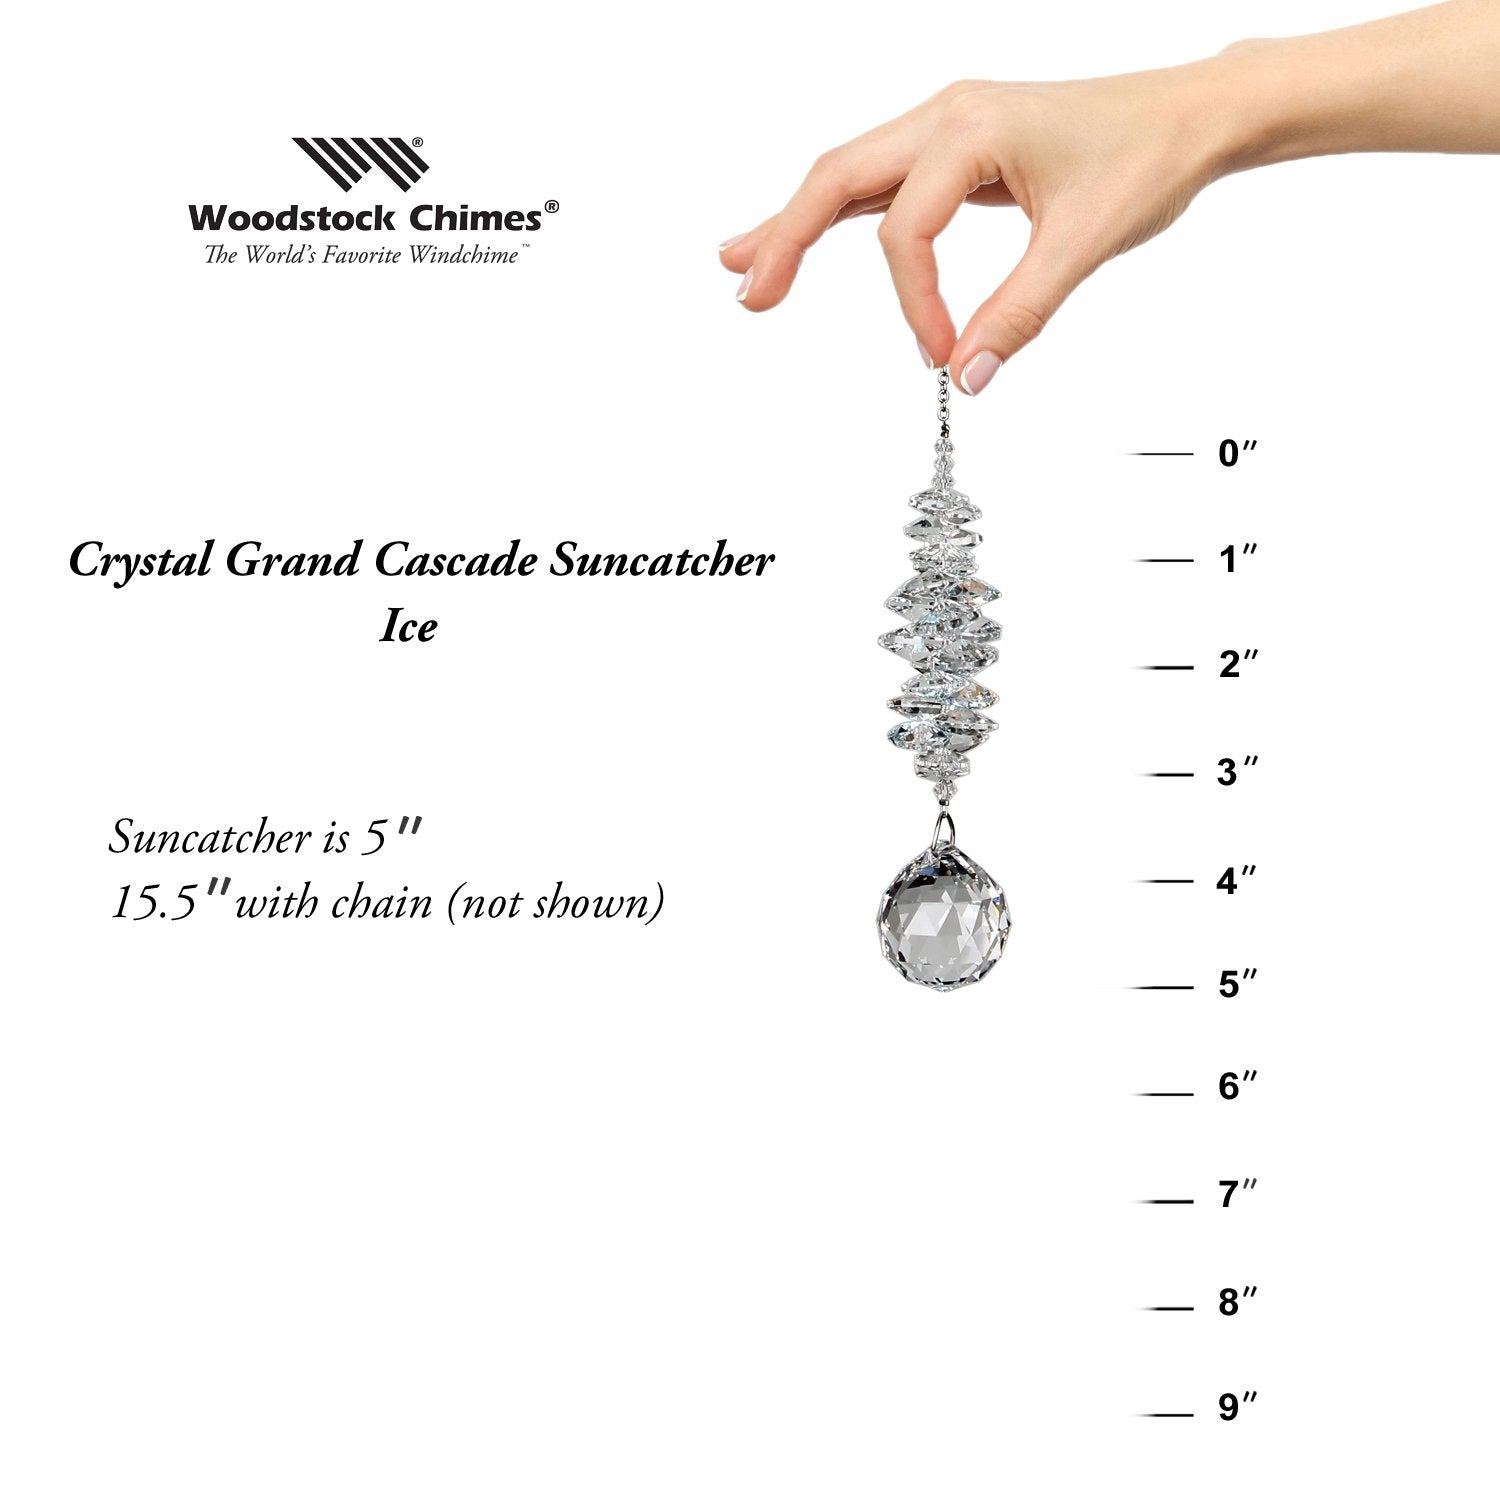 Crystal Grand Cascade Suncatcher - Ice proportion image